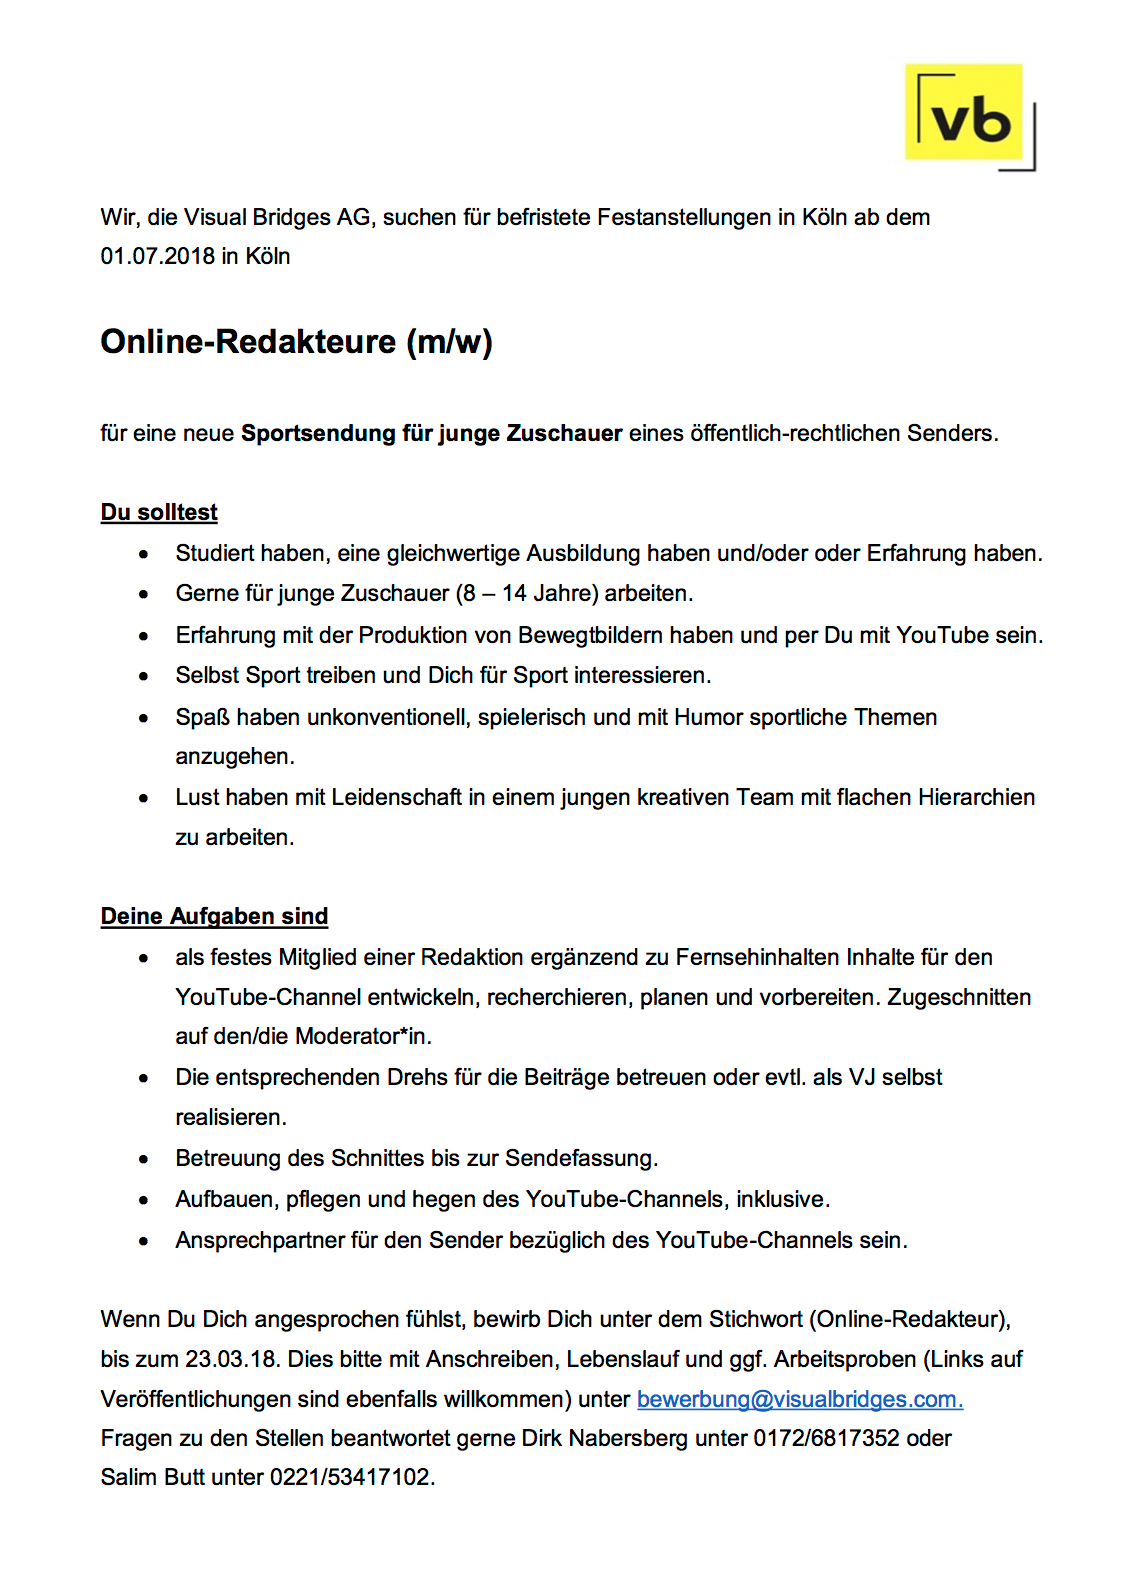 Fein Job Bank Lebenslauf Aufbauen Bilder - Entry Level Resume ...